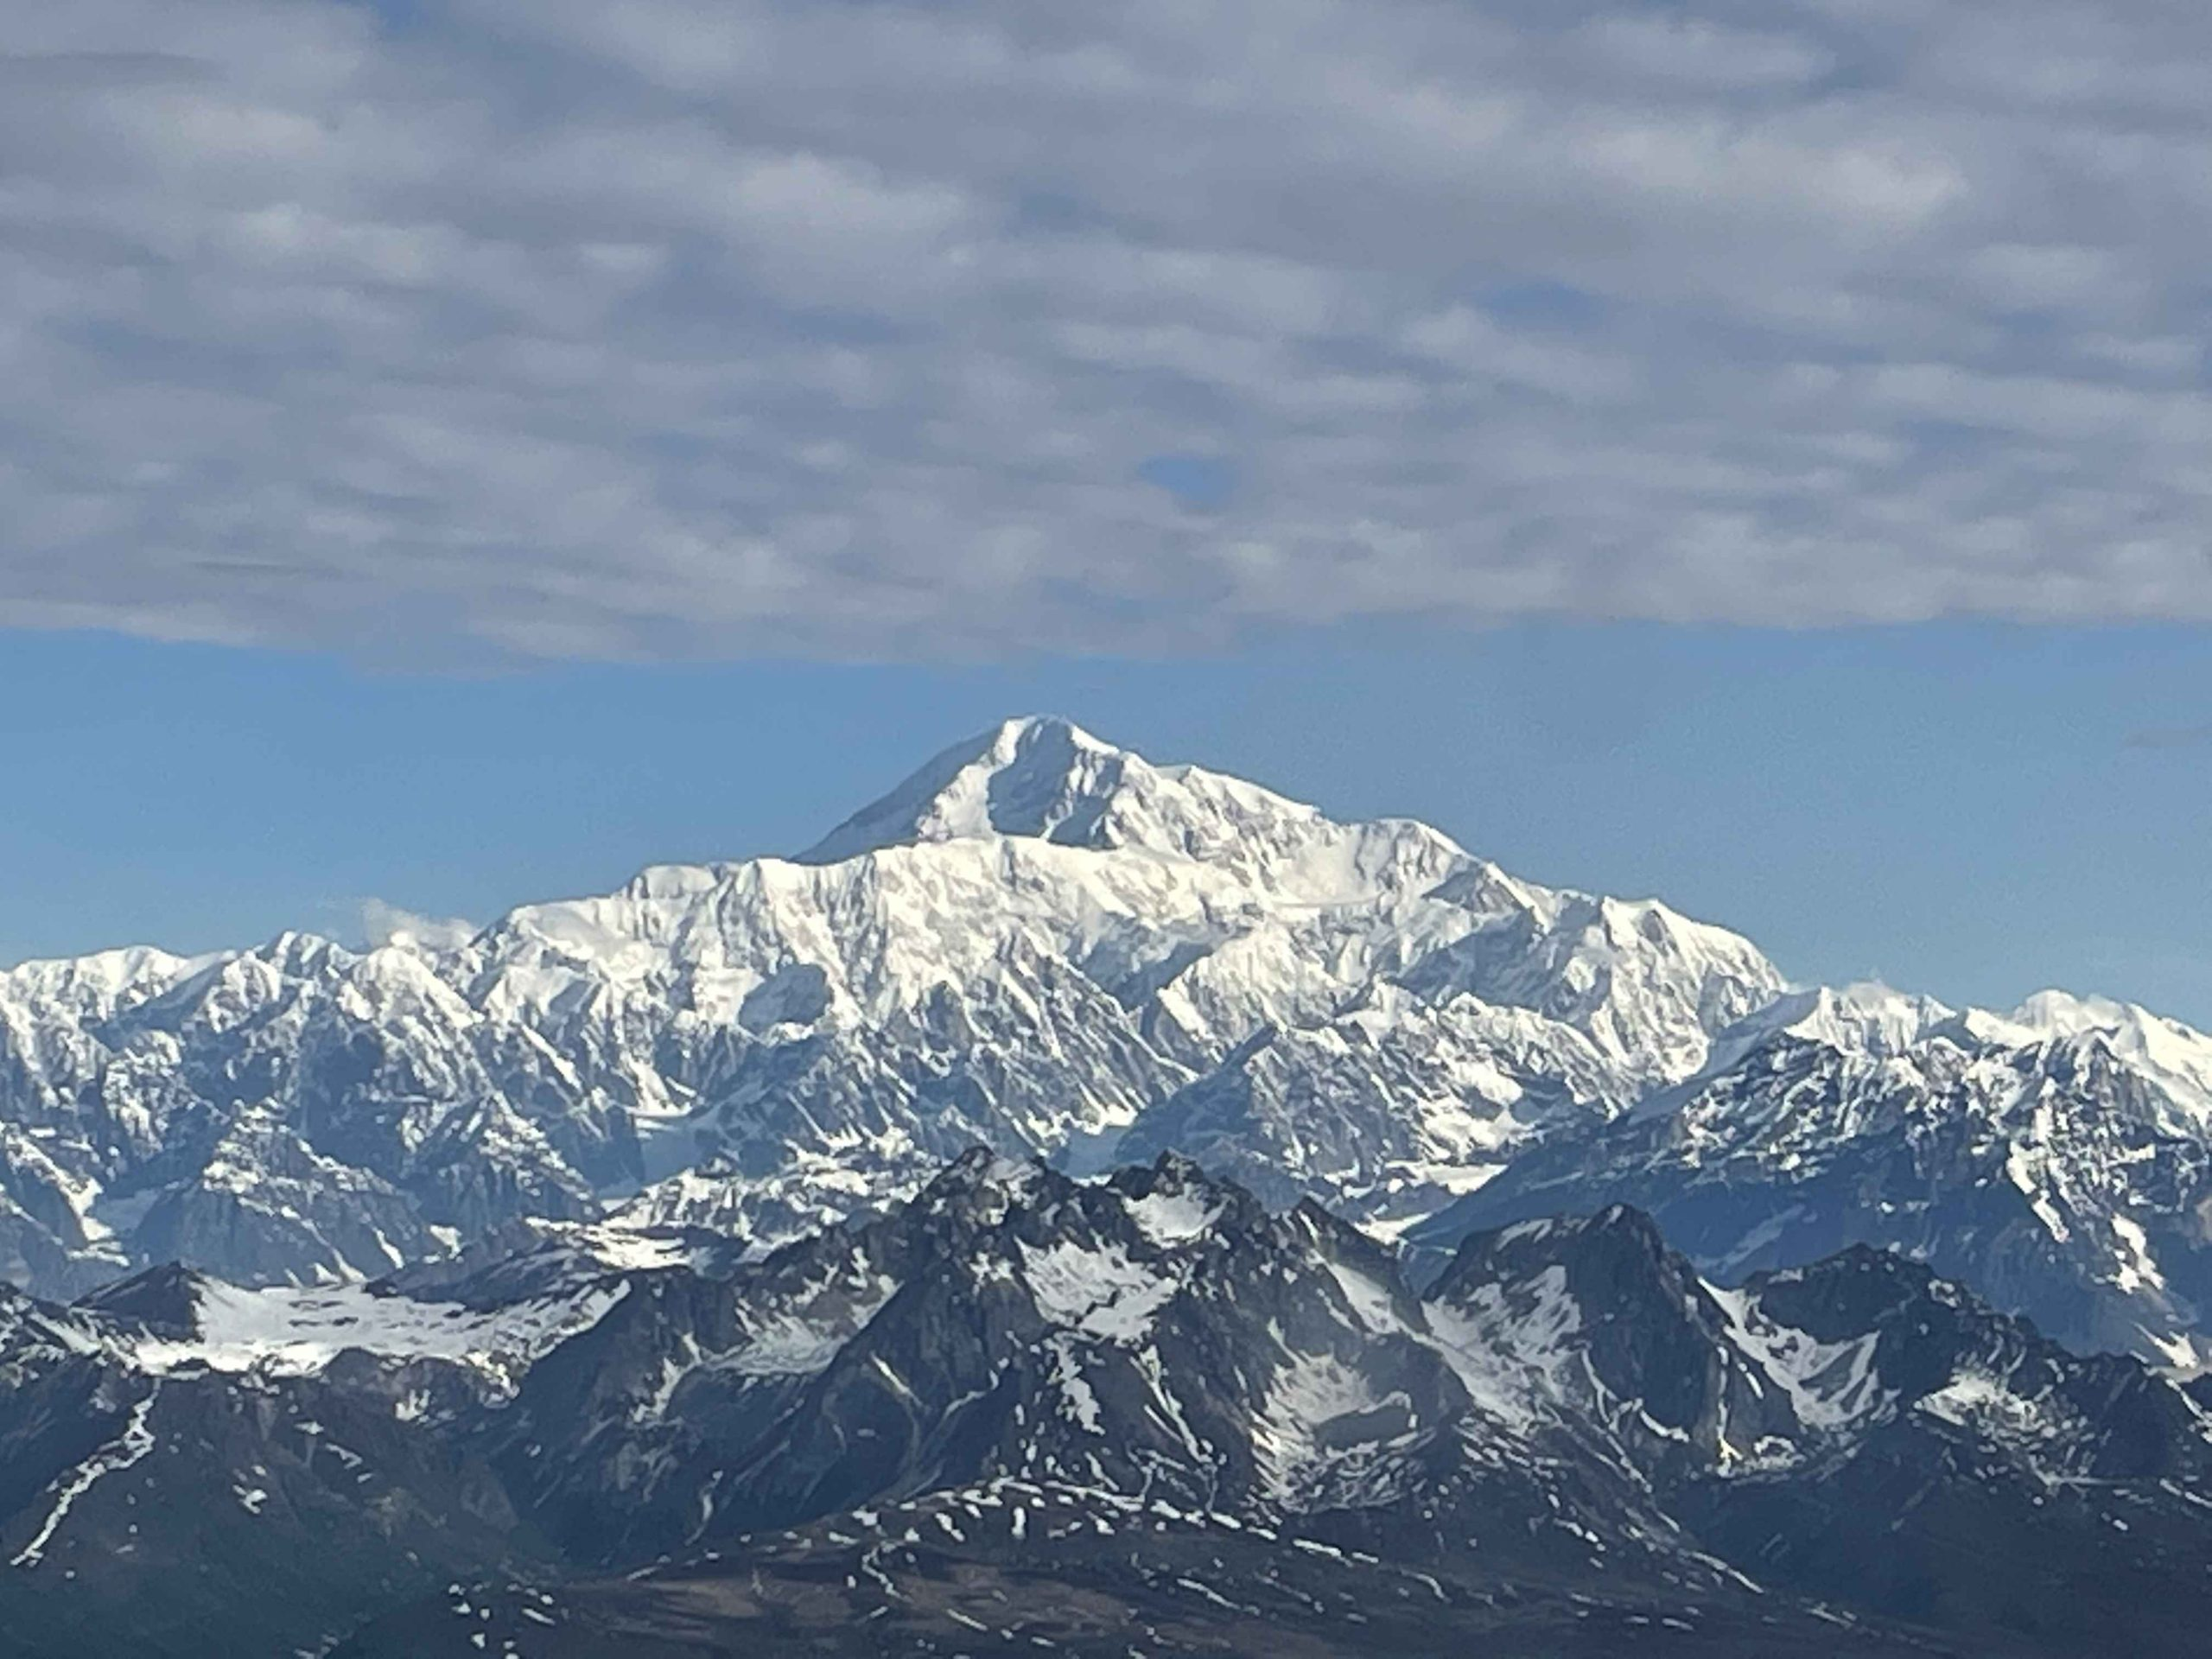 View from the airplane on the way to Denali (Dallas Glass)